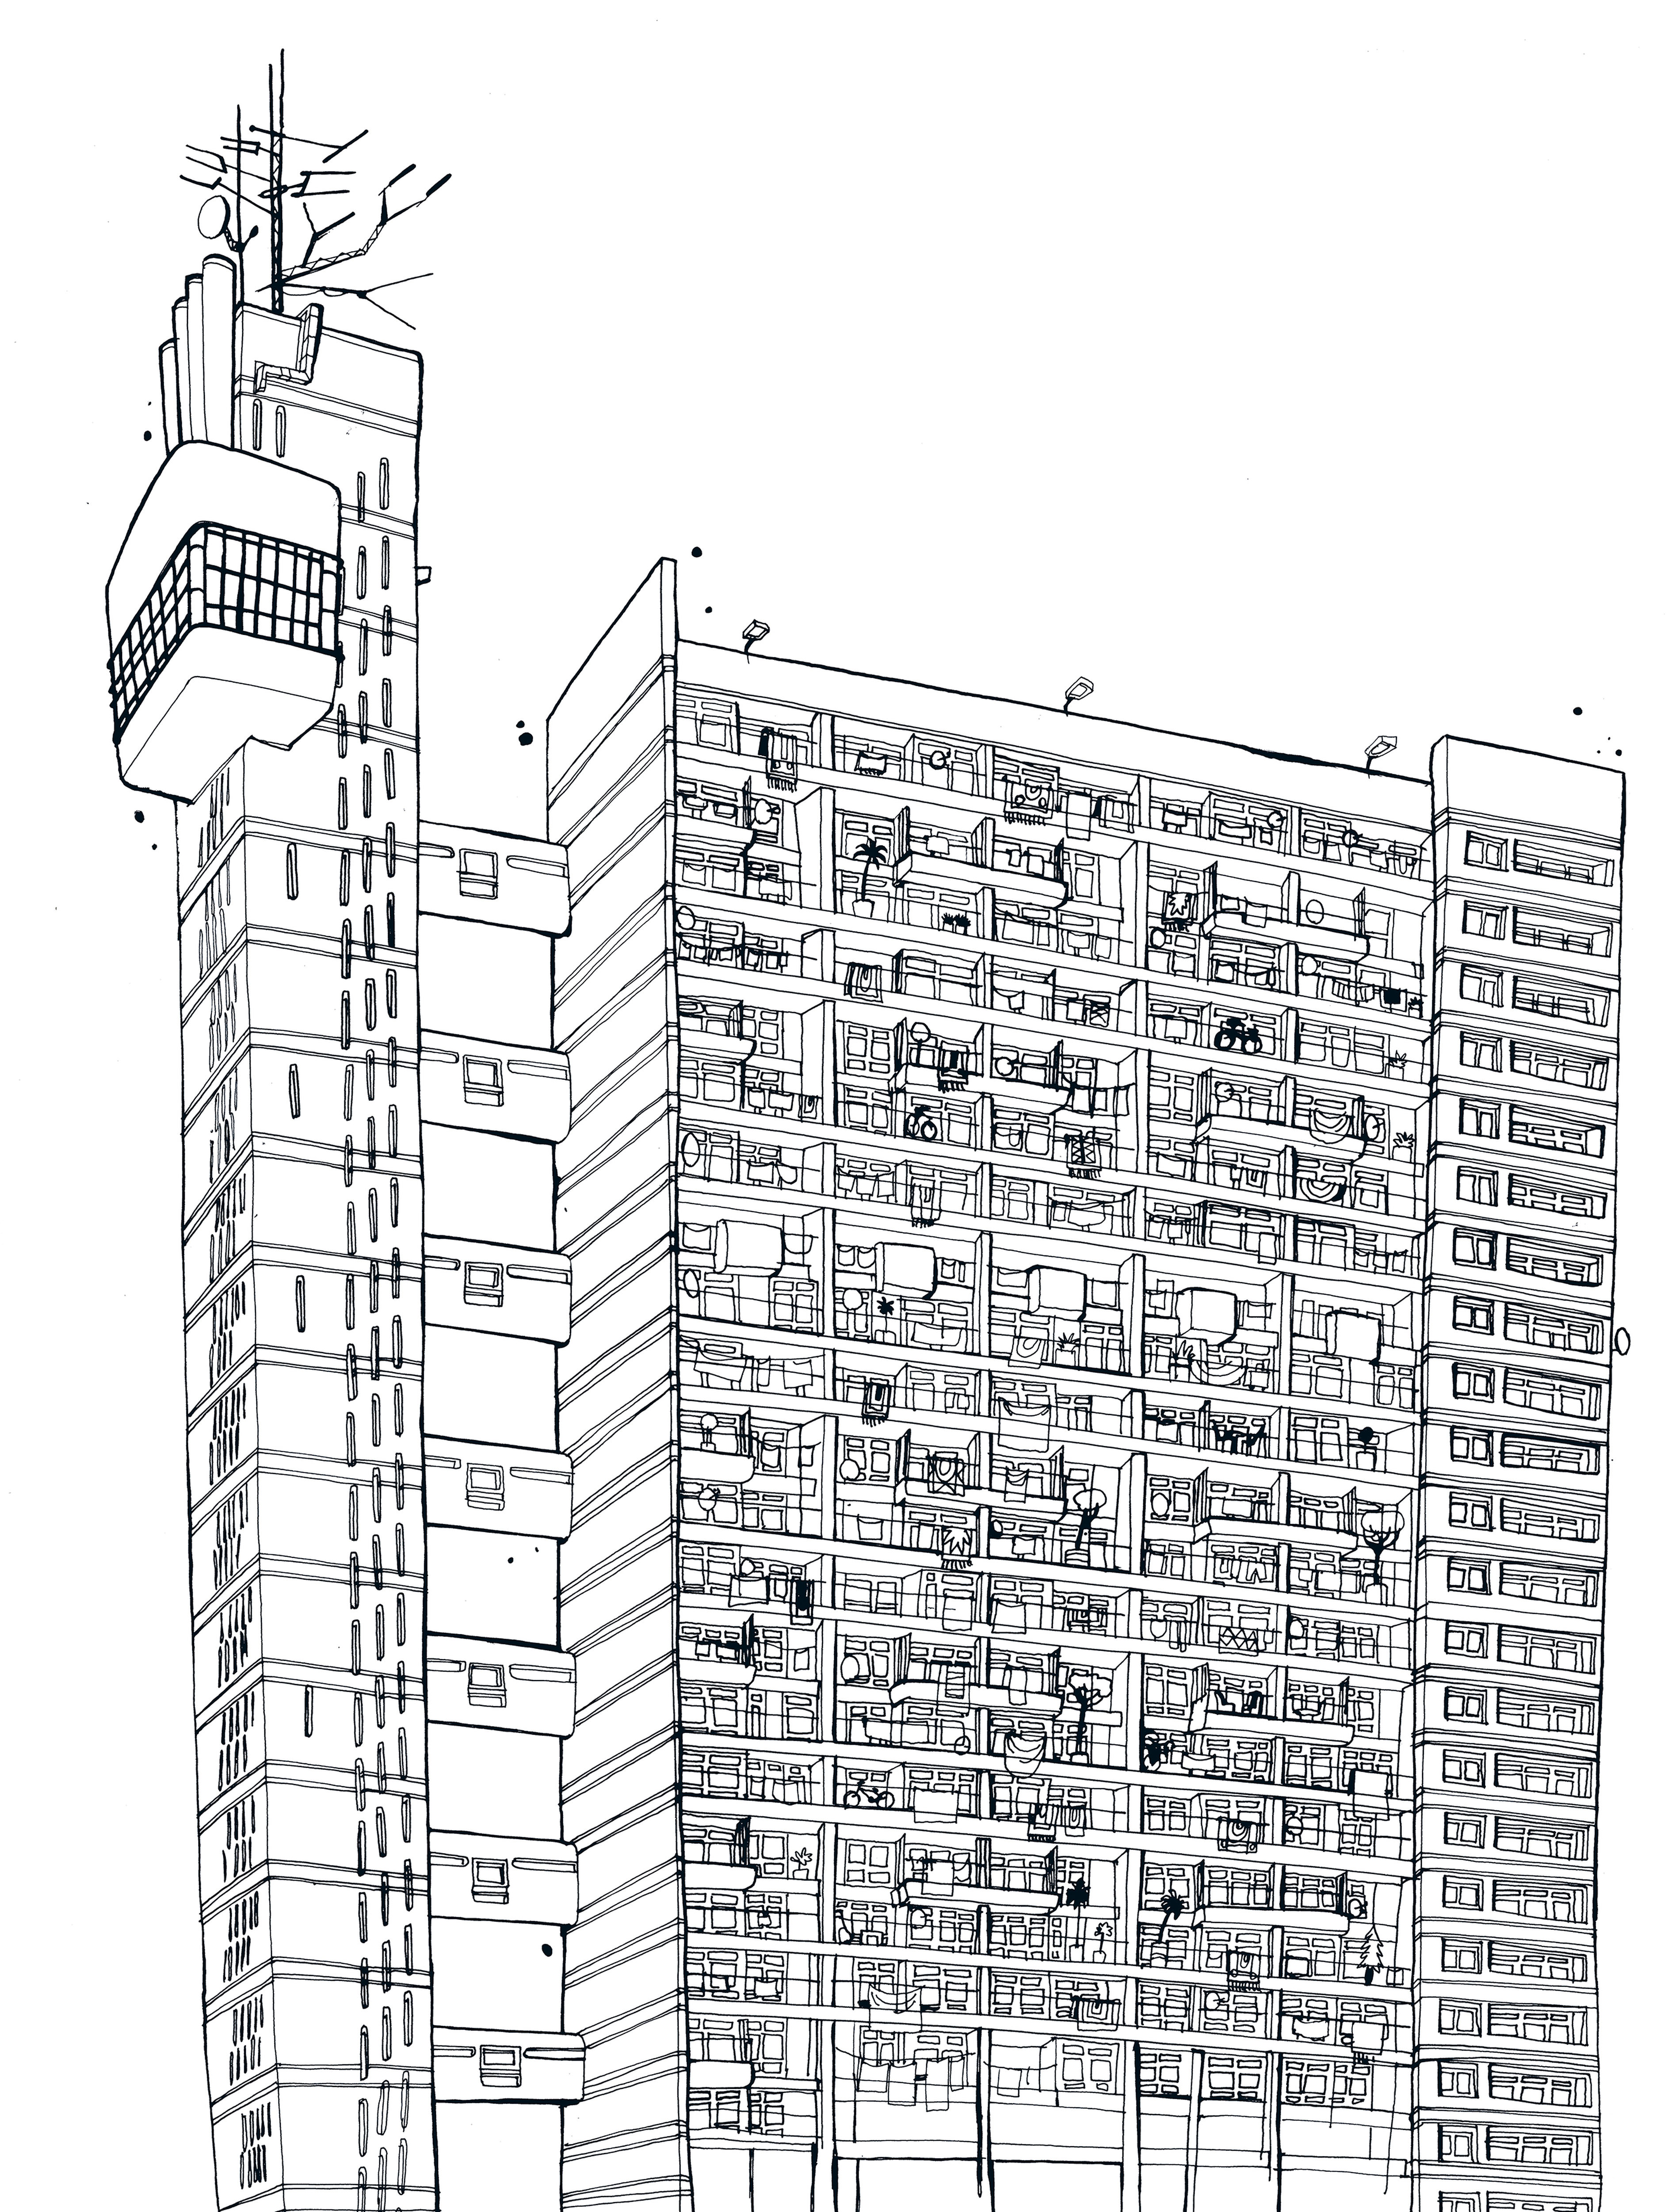 THE TRELLICK TOWER